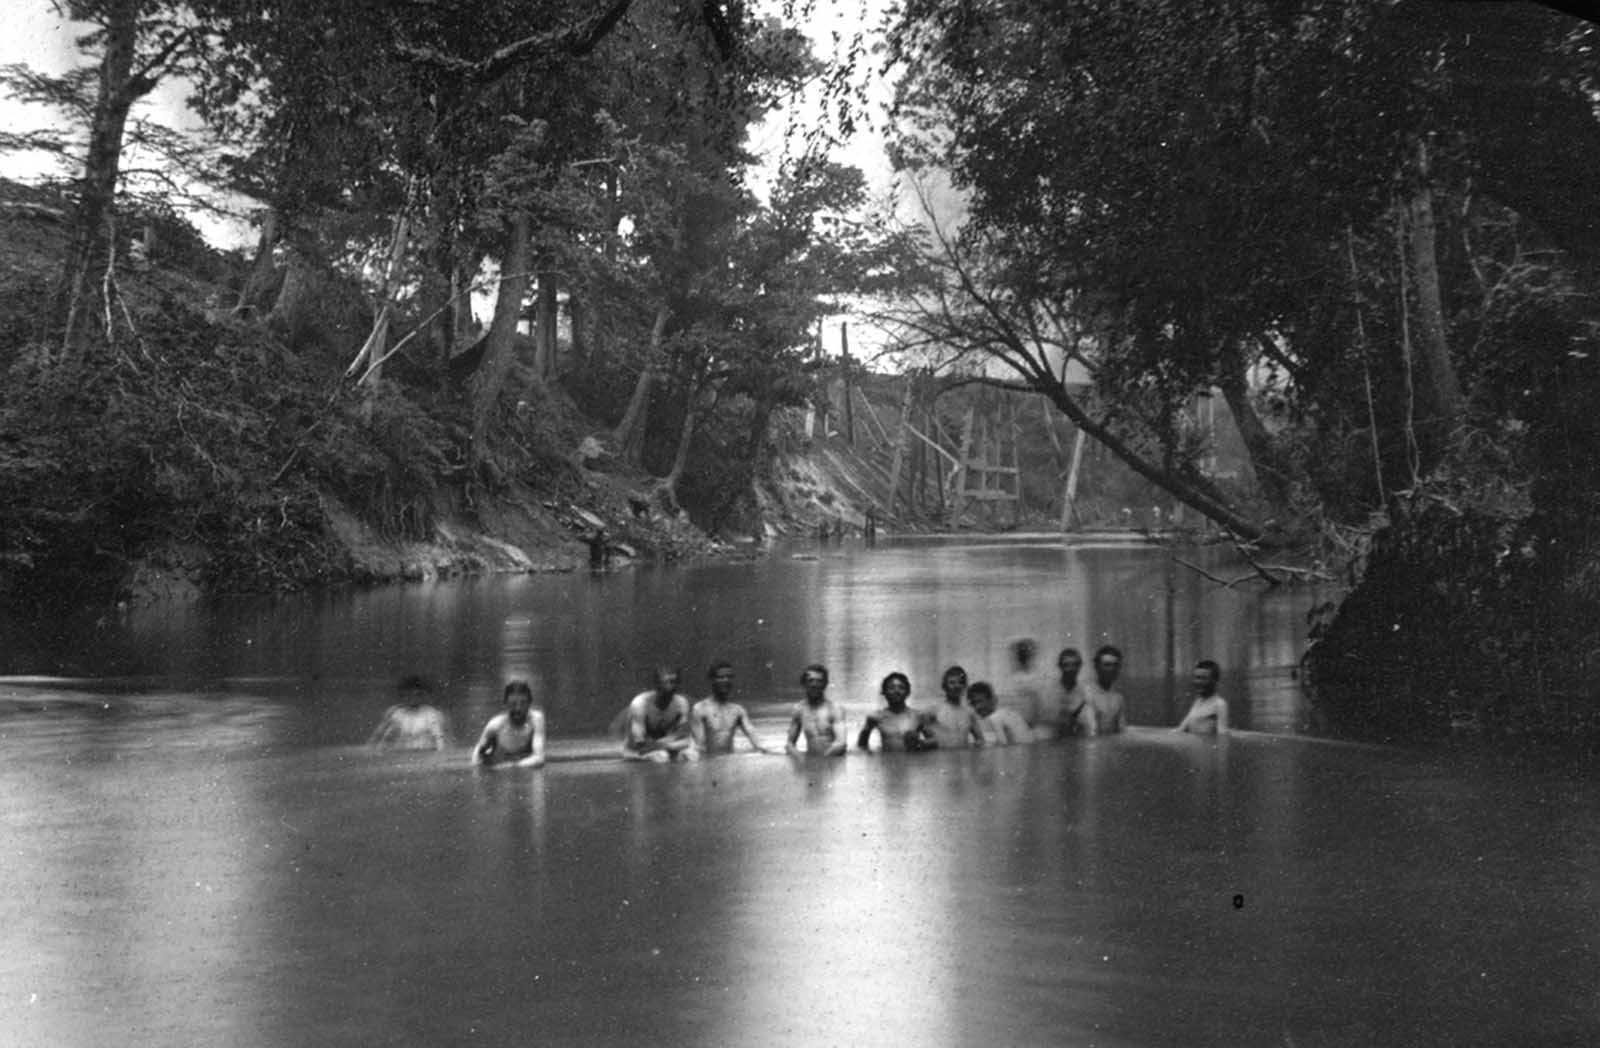 Soldiers bathing in the North Anna River, Virginia, in May of 1864. The ruins of Richmond & Fredericksburg railroad bridge are visible in the distance.